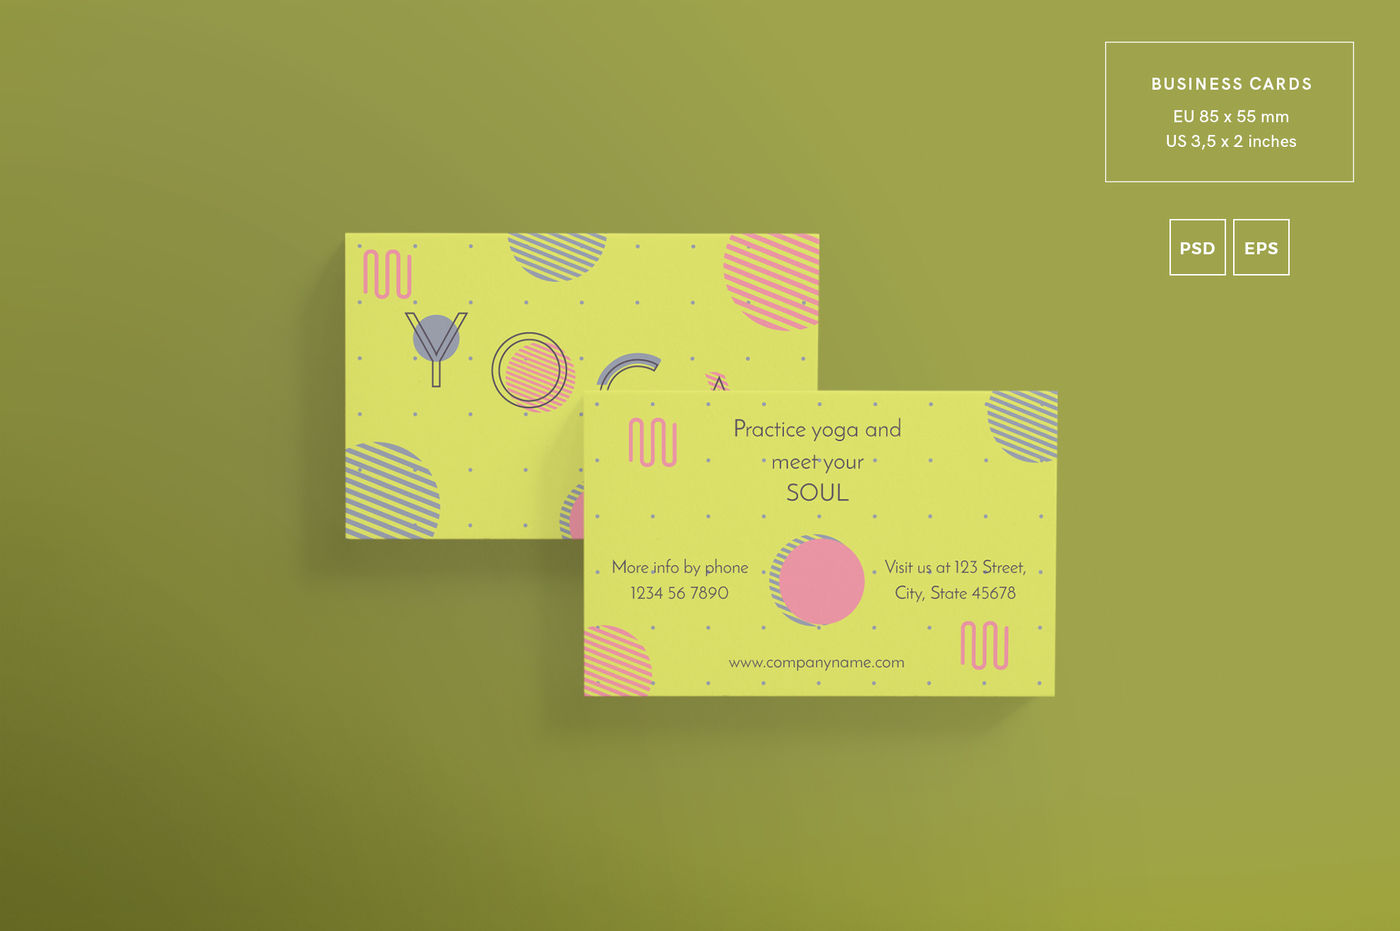 Download Sticky Notes Branding Mockup Free Psd Yellowimages